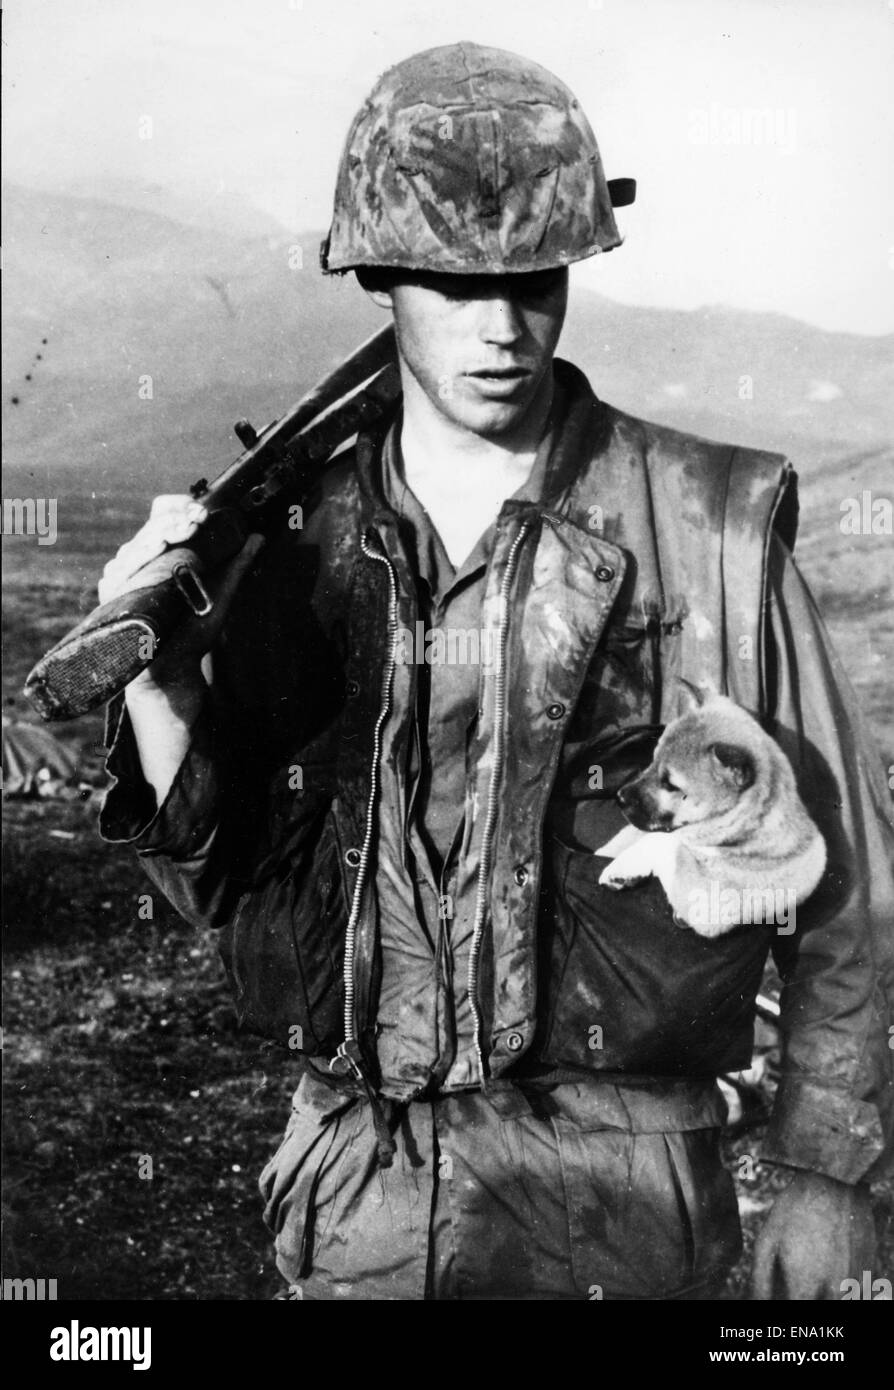 File. 30th Apr, 2015. The Vietnam War, also known as the Second Indochina War, and also known in Vietnam as Resistance - Stock Image